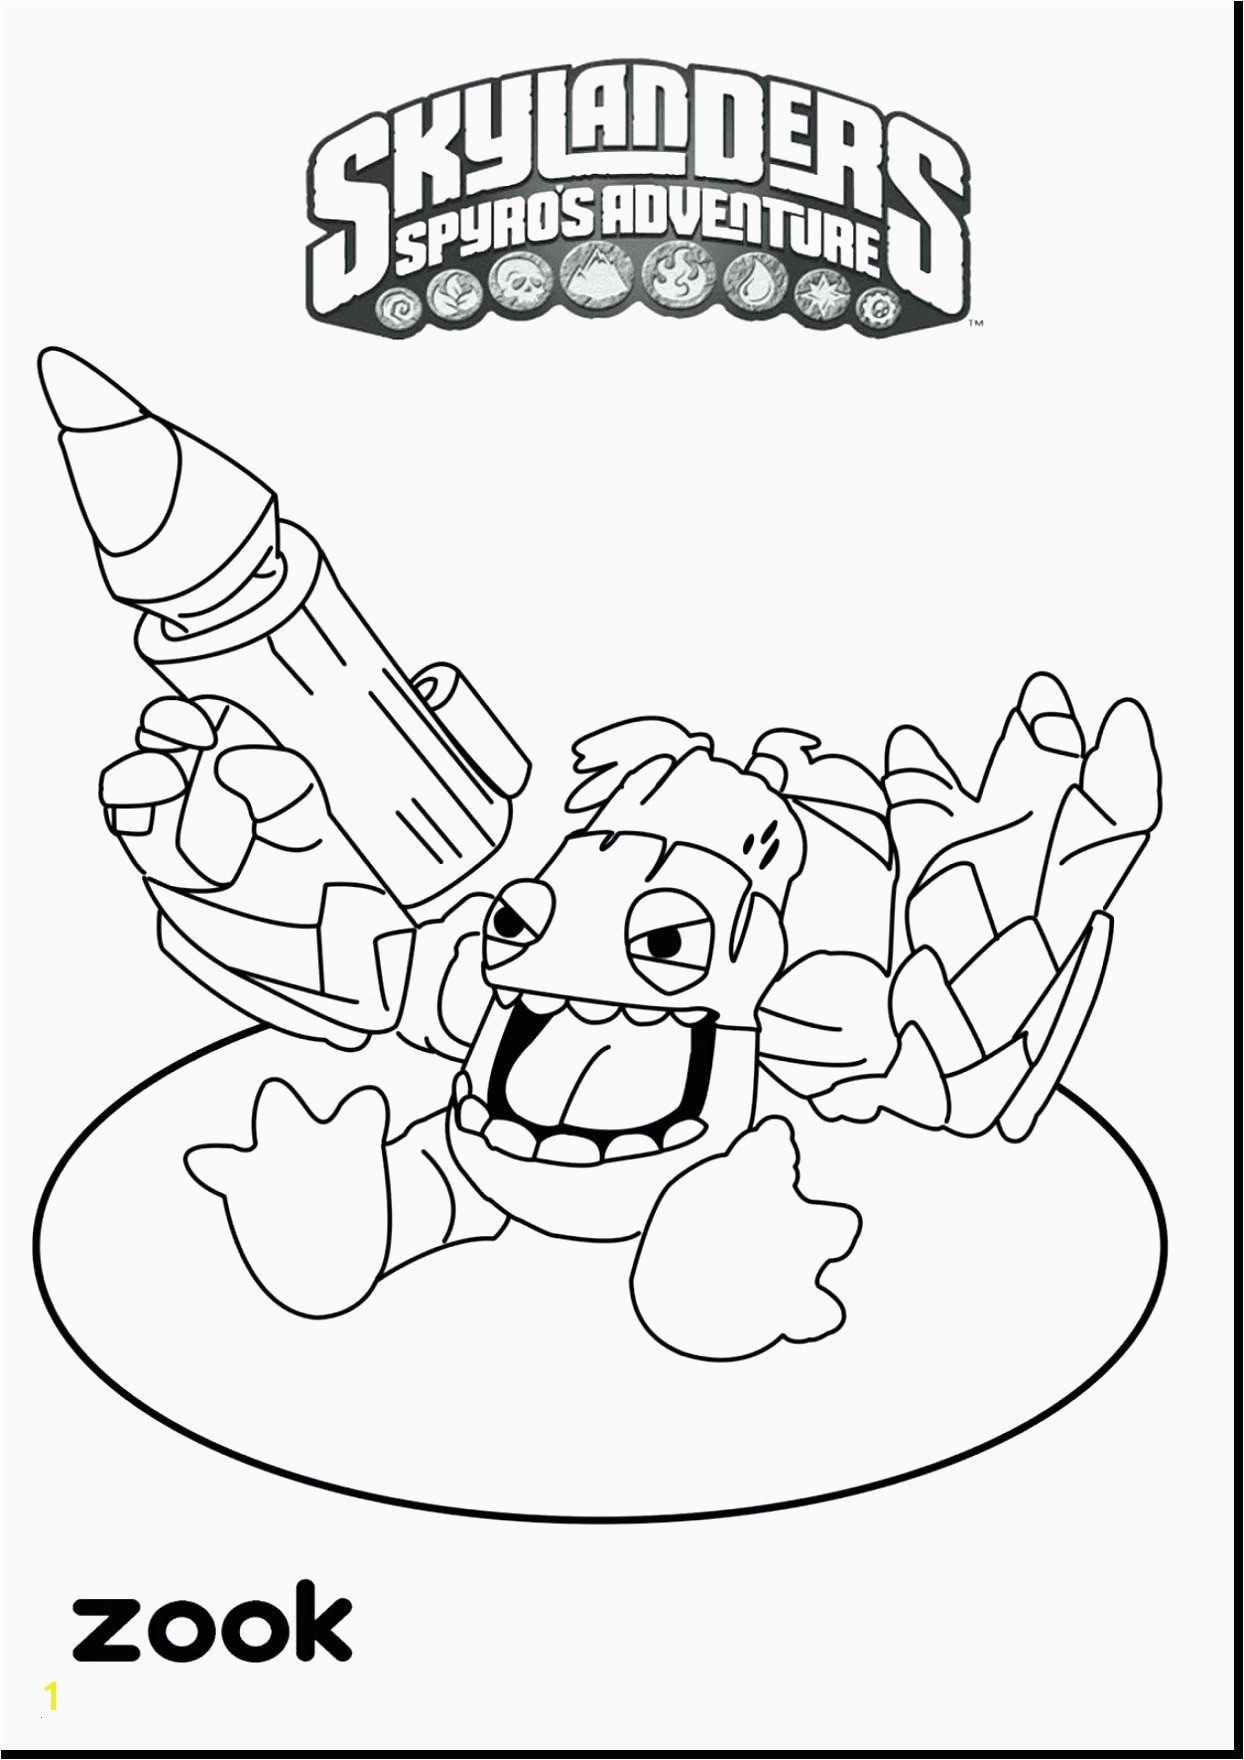 Bratz Coloring Pages that You Can Print 34 Unique Coloring Pages to Print Cloud9vegas